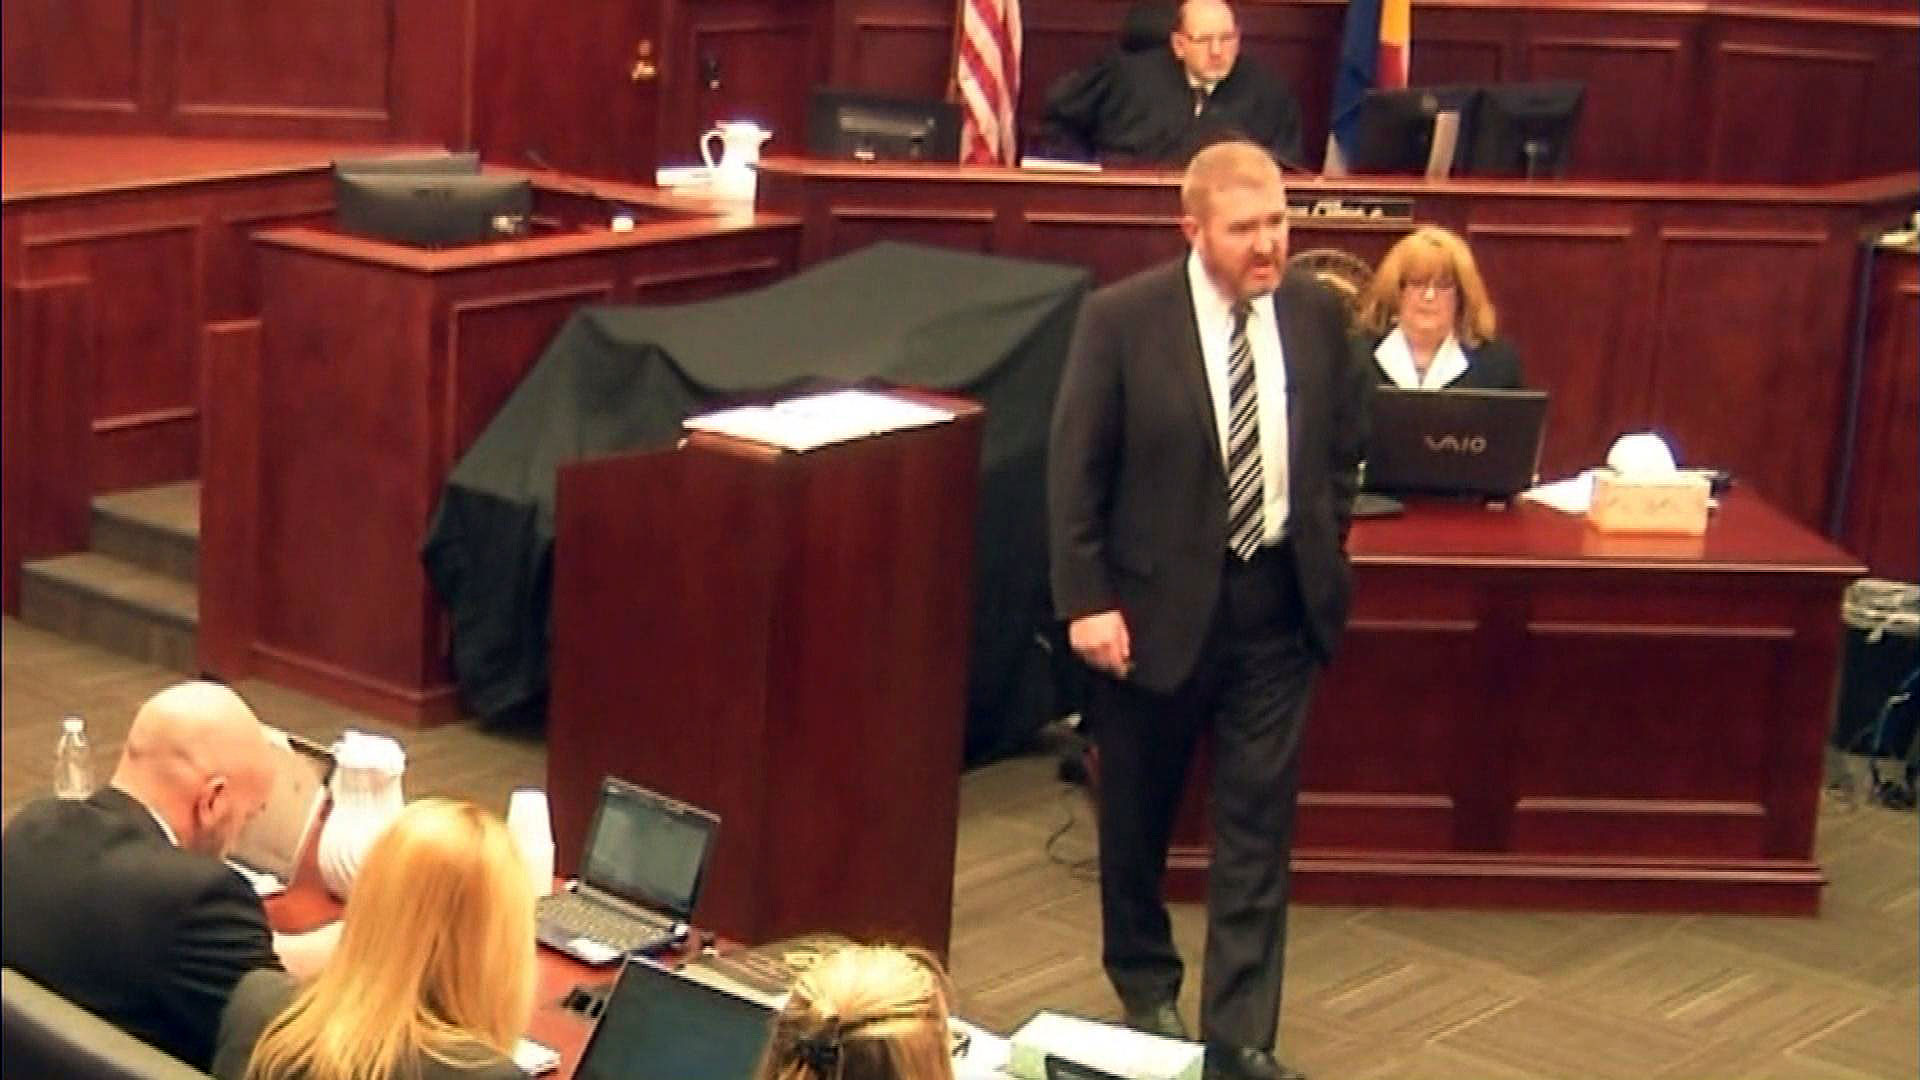 Public defender Daniel King during opening statements at the trial (credit: CBS)